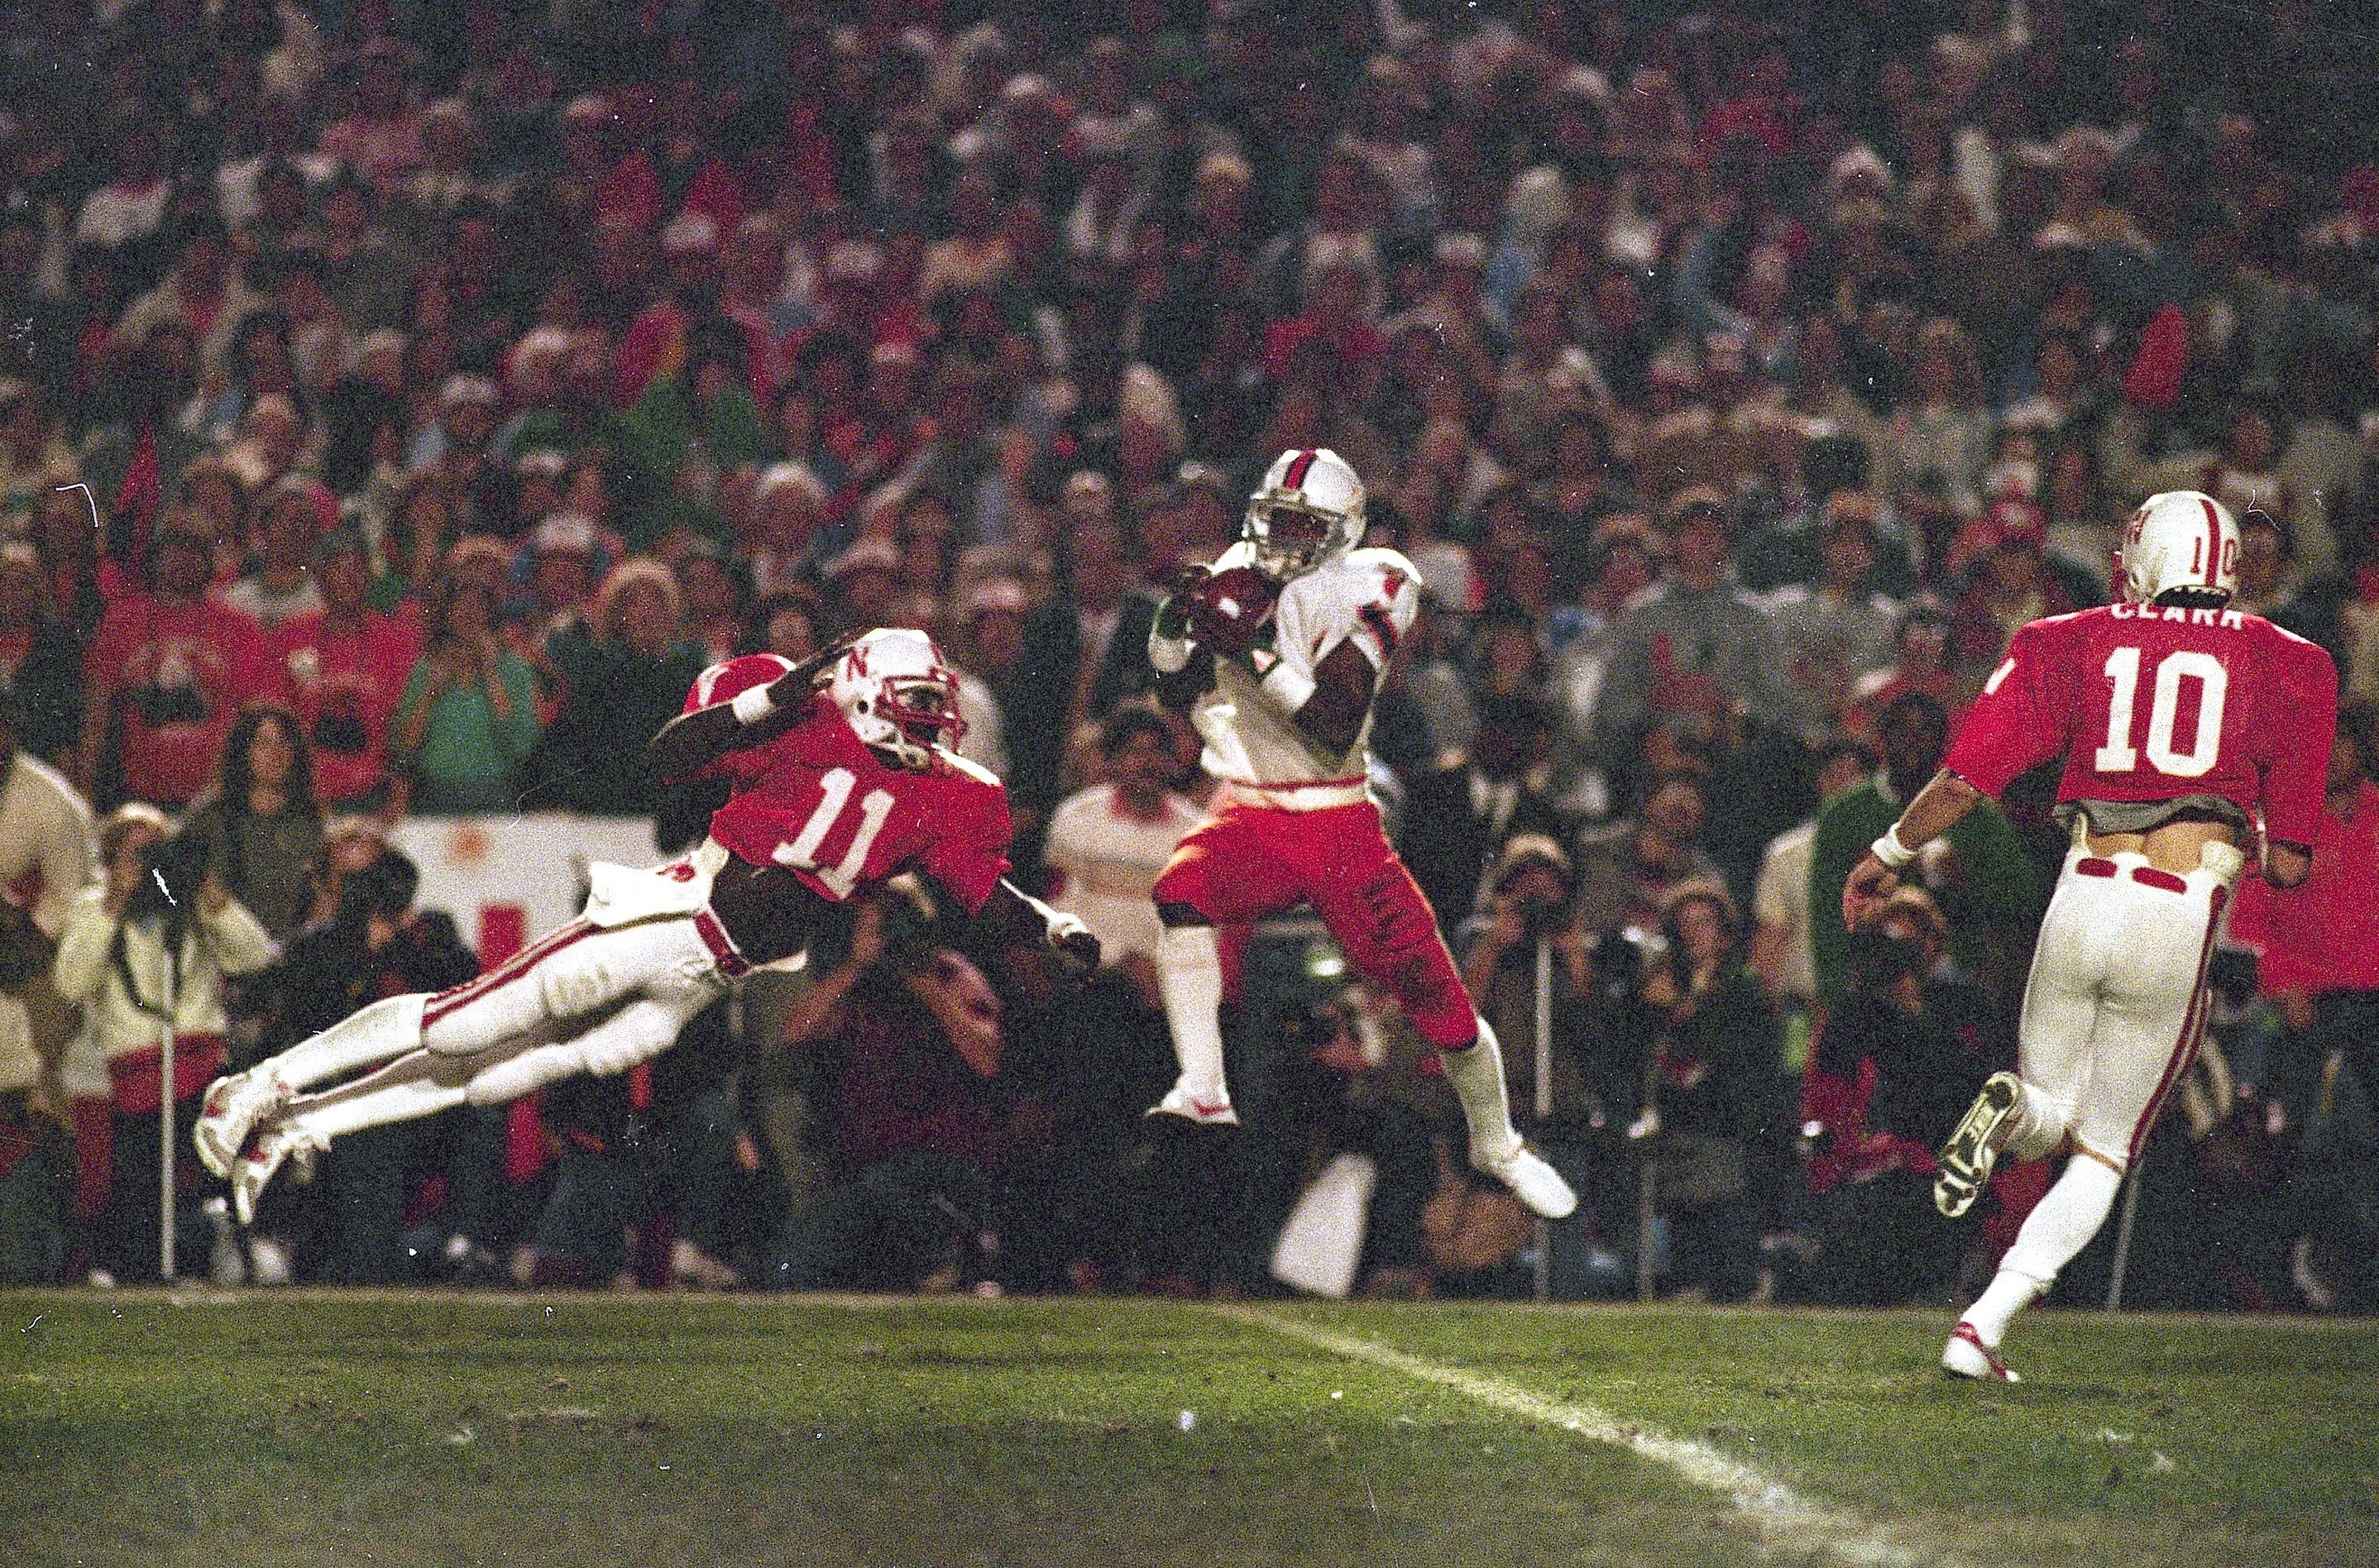 Mandatory Credit: Photo by John Raoux/AP/Shutterstock (6569113a) University of Miami wide receiver Stanley Shakespeare (6) leaps high to gather a first quarter pass from quarterback Bernie Kosar against the University of Nebraska in the Orange Bowl game in Miami, . Flying through the air to defend is Nebraska cornerback Neil Harris (11 Orange Bowl Miami Nebraska 1984, Miami, USA